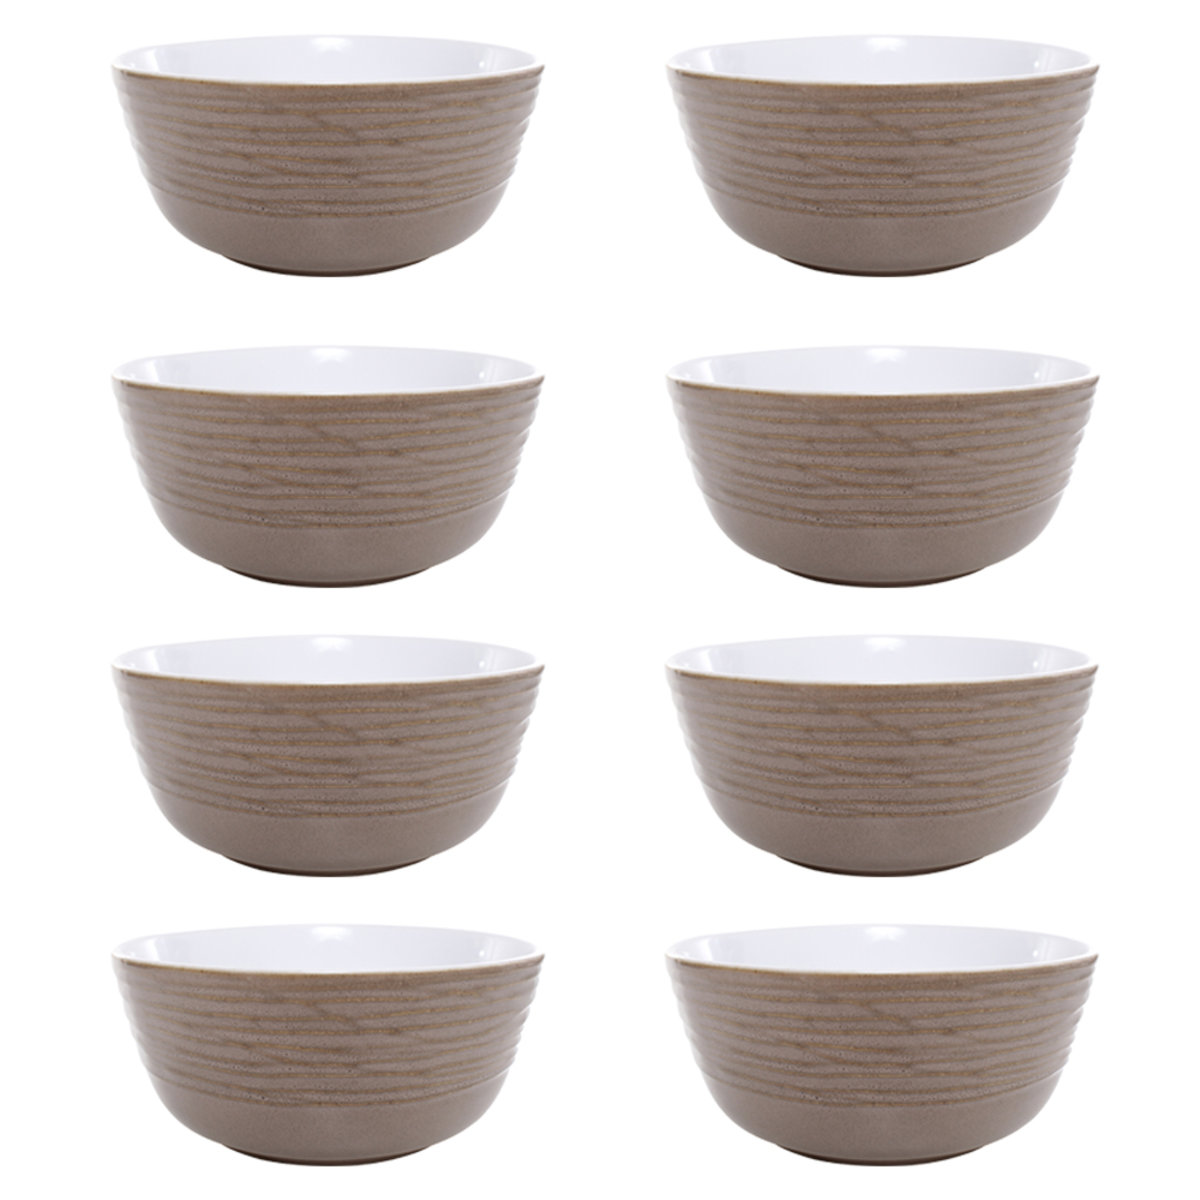 Bowl Tazon Mesa Set Redondo De Ceramica 8 Pz Crown Baccara